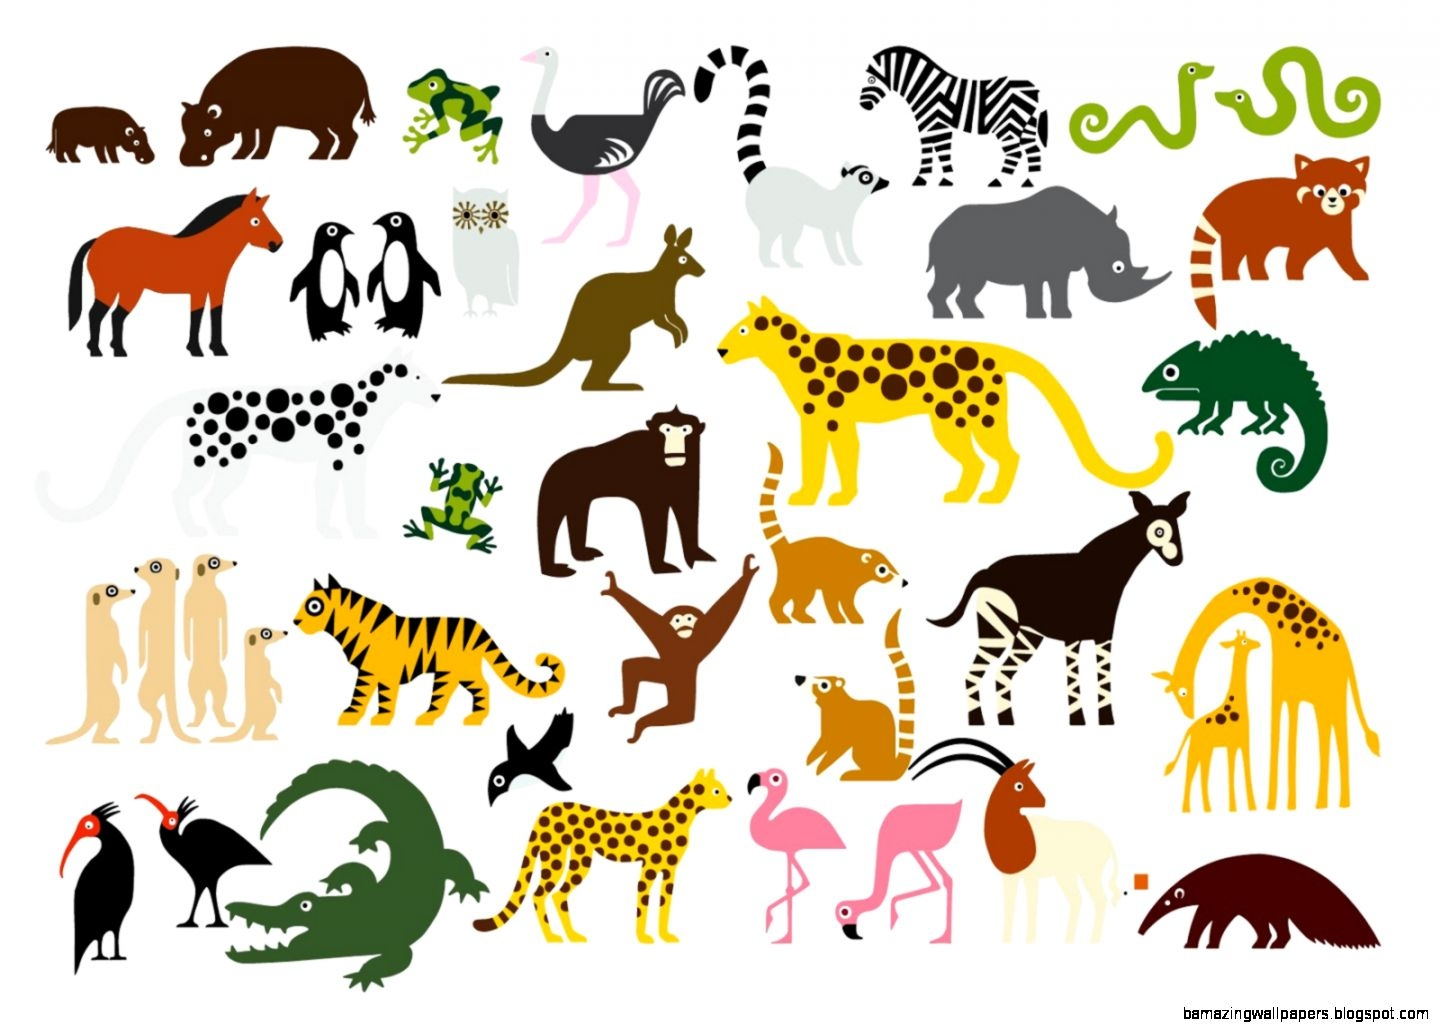 Animated images of animals